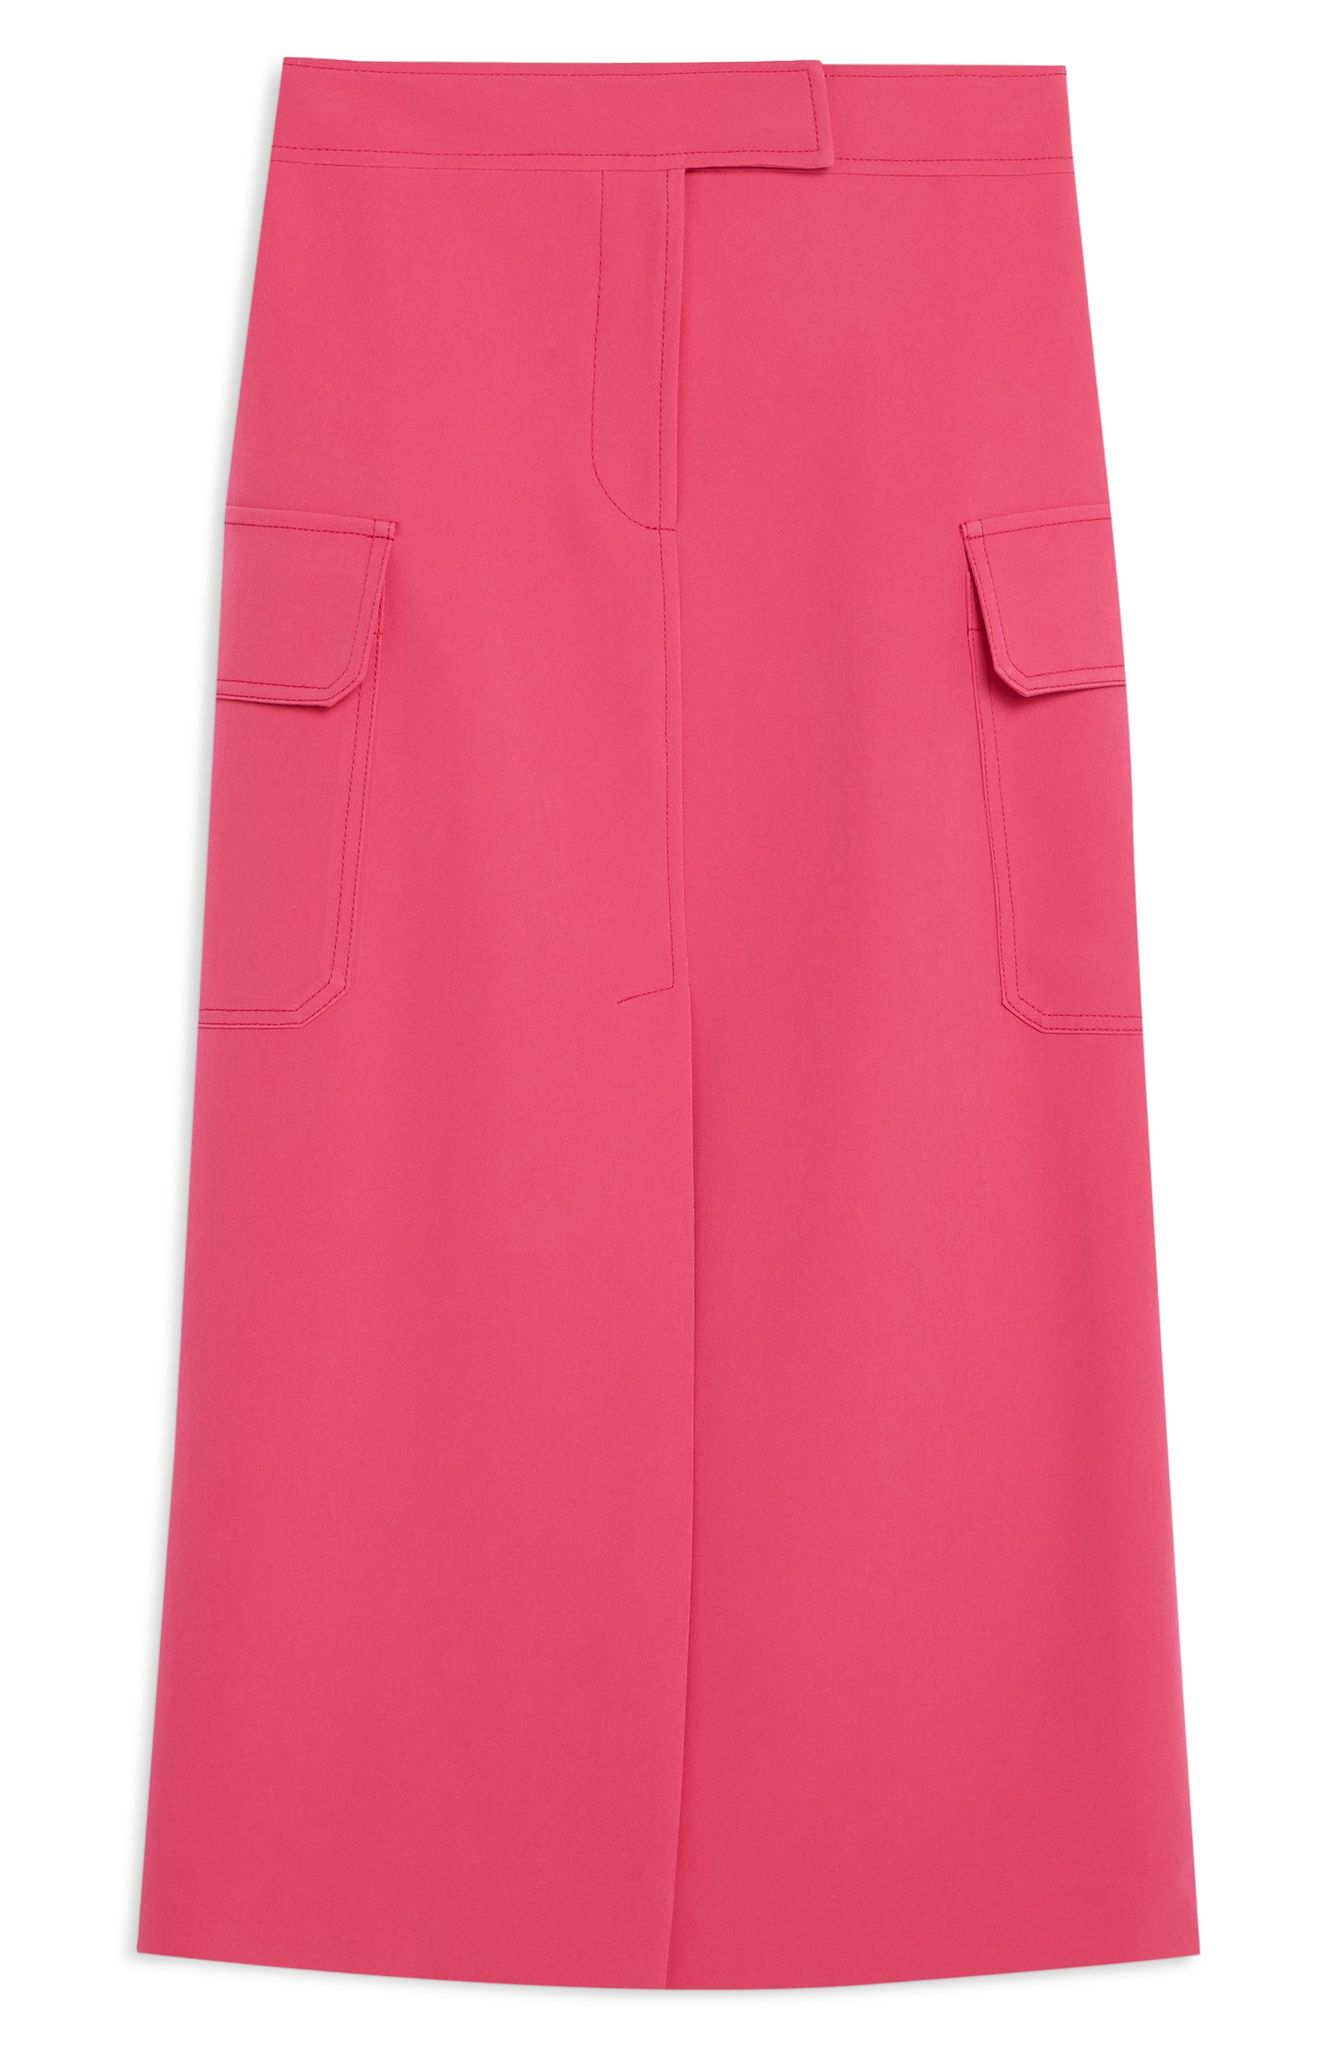 Topshop Split Utility Midi Skirt (normally $68): NOW $44.90 (Image: Nordstrom)